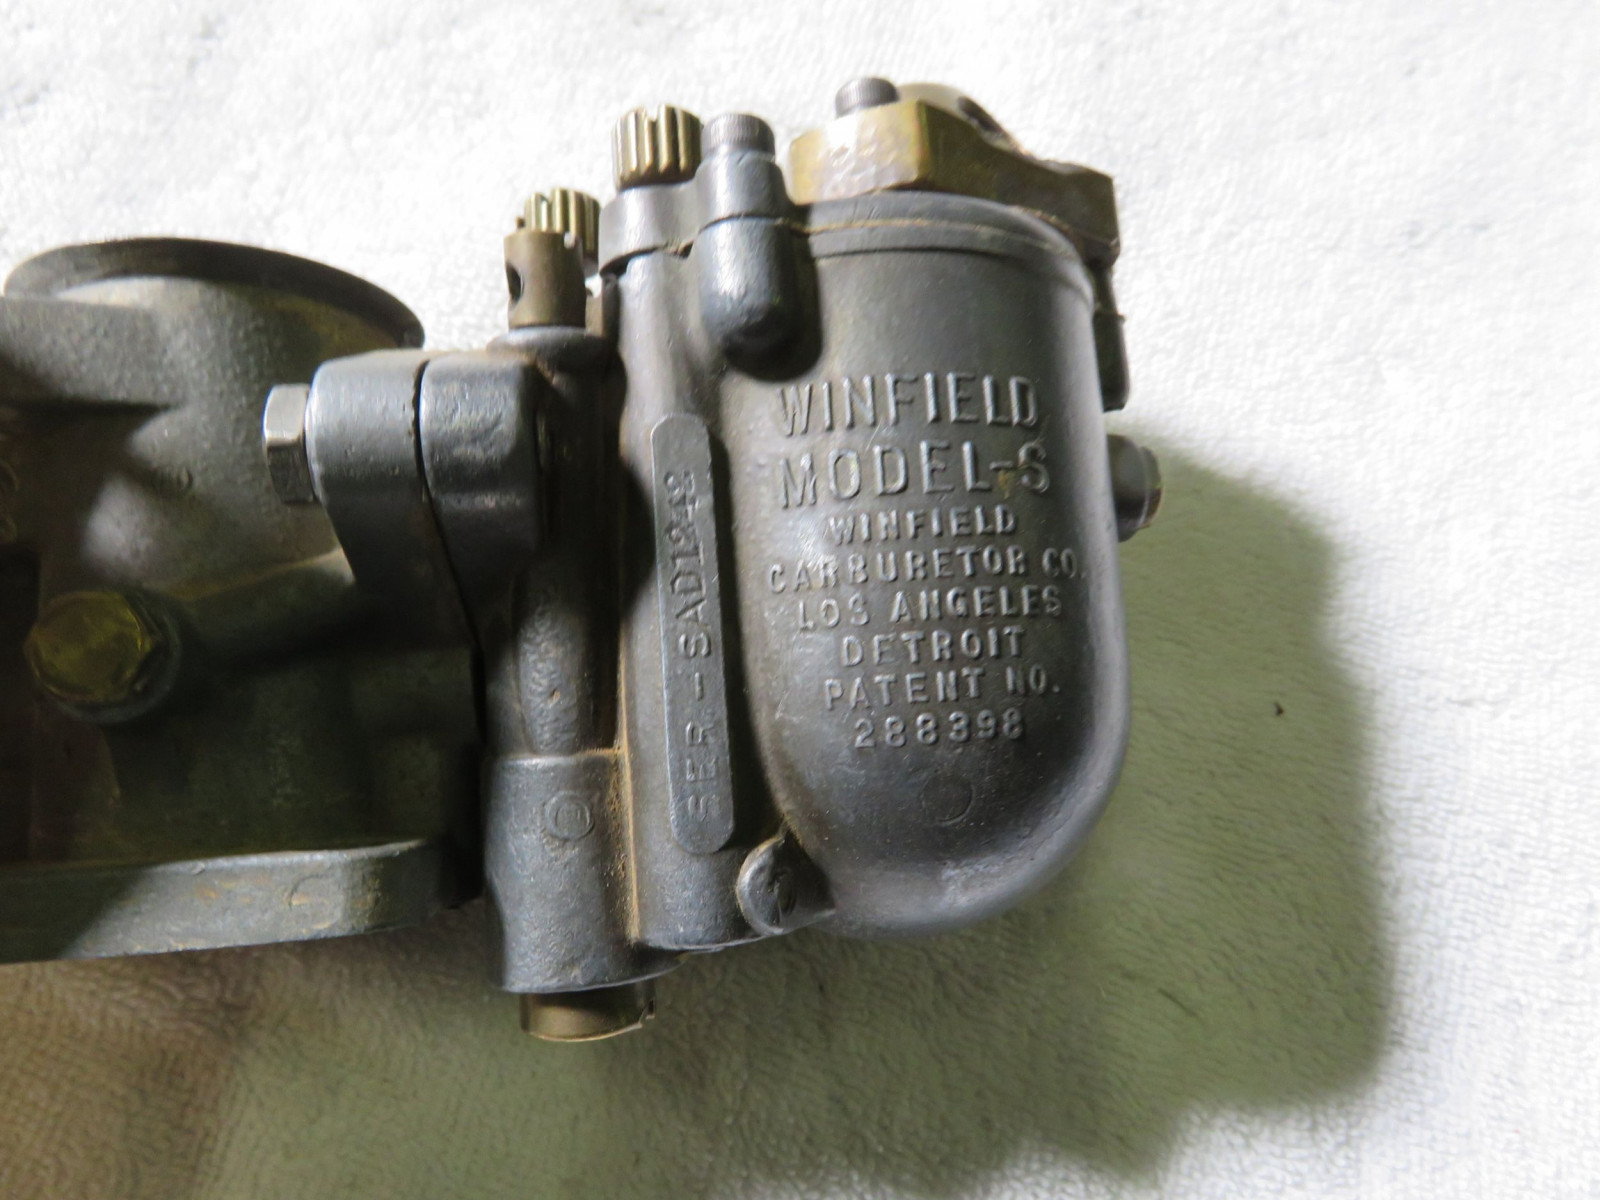 Dual Winfield Model SR Carbs with linkage - Image 2